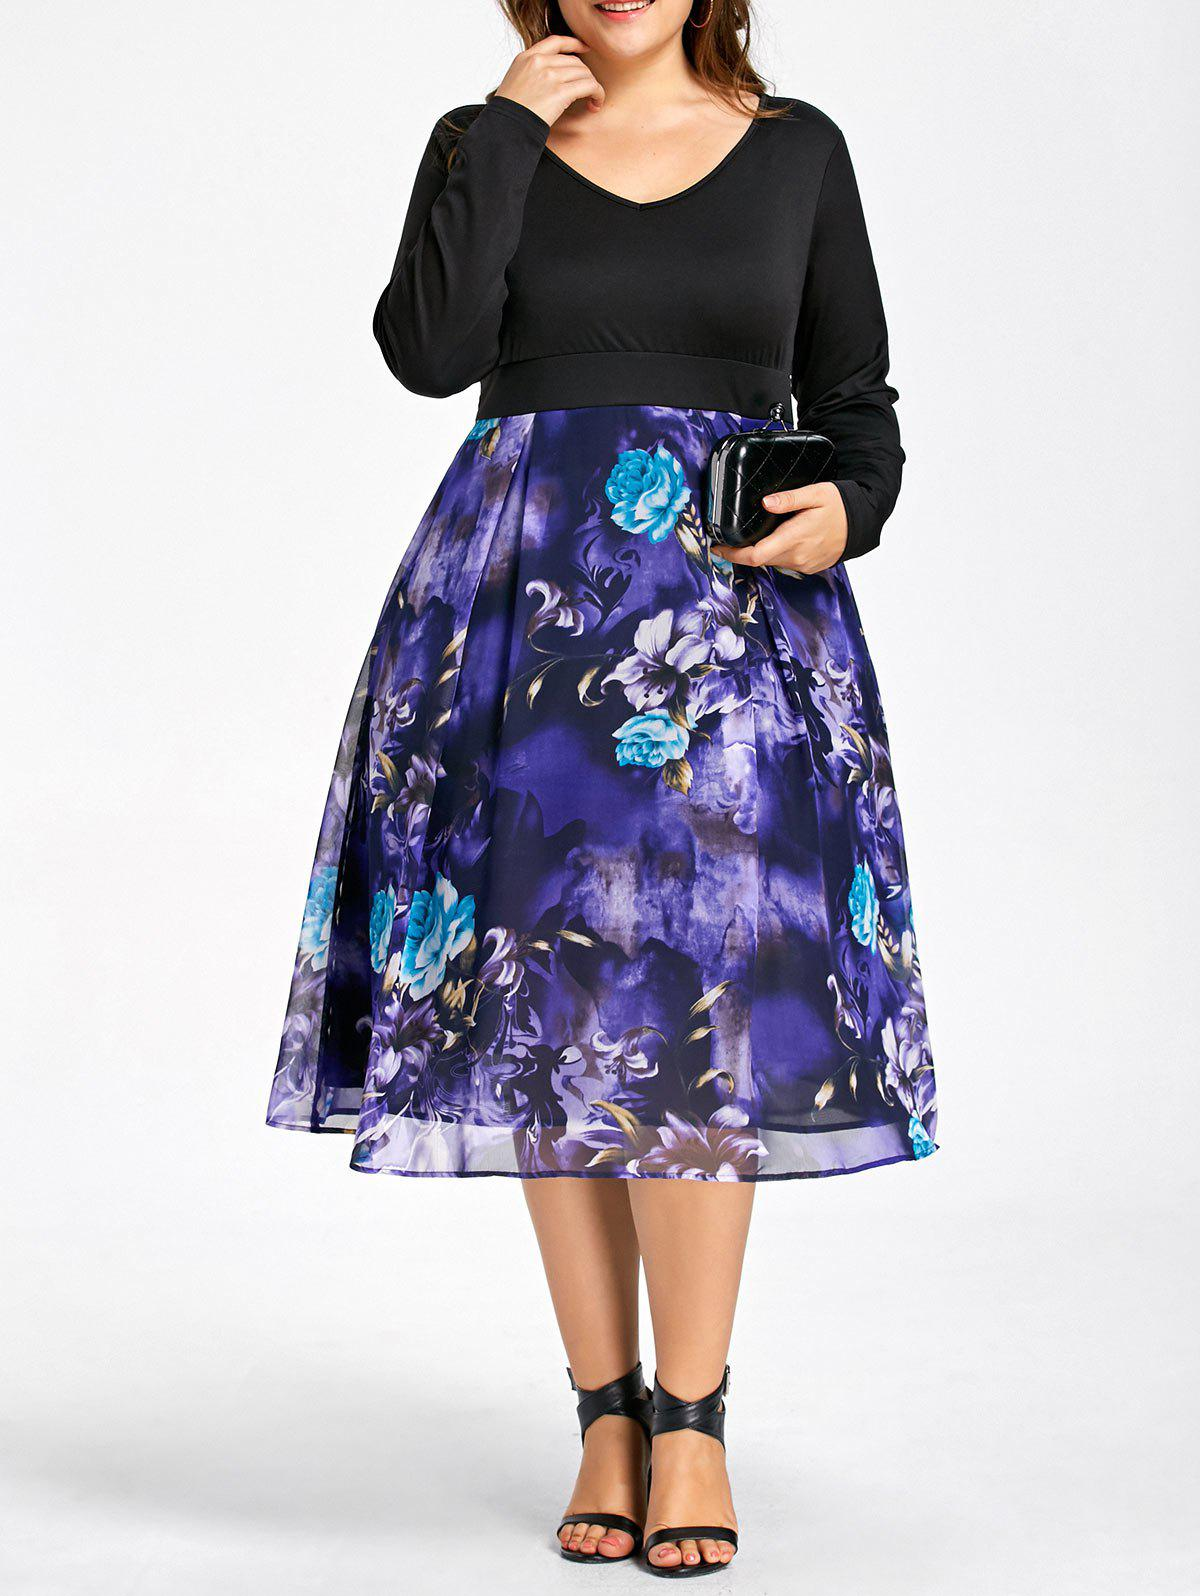 Plus Size Floral Print Long Sleeve DressWOMEN<br><br>Size: 5XL; Color: BLACK; Style: Brief; Material: Polyester,Spandex; Silhouette: A-Line; Dresses Length: Mid-Calf; Neckline: V-Neck; Sleeve Length: Long Sleeves; Pattern Type: Floral; With Belt: No; Season: Fall,Spring; Weight: 0.4120kg; Package Contents: 1 x Dress;